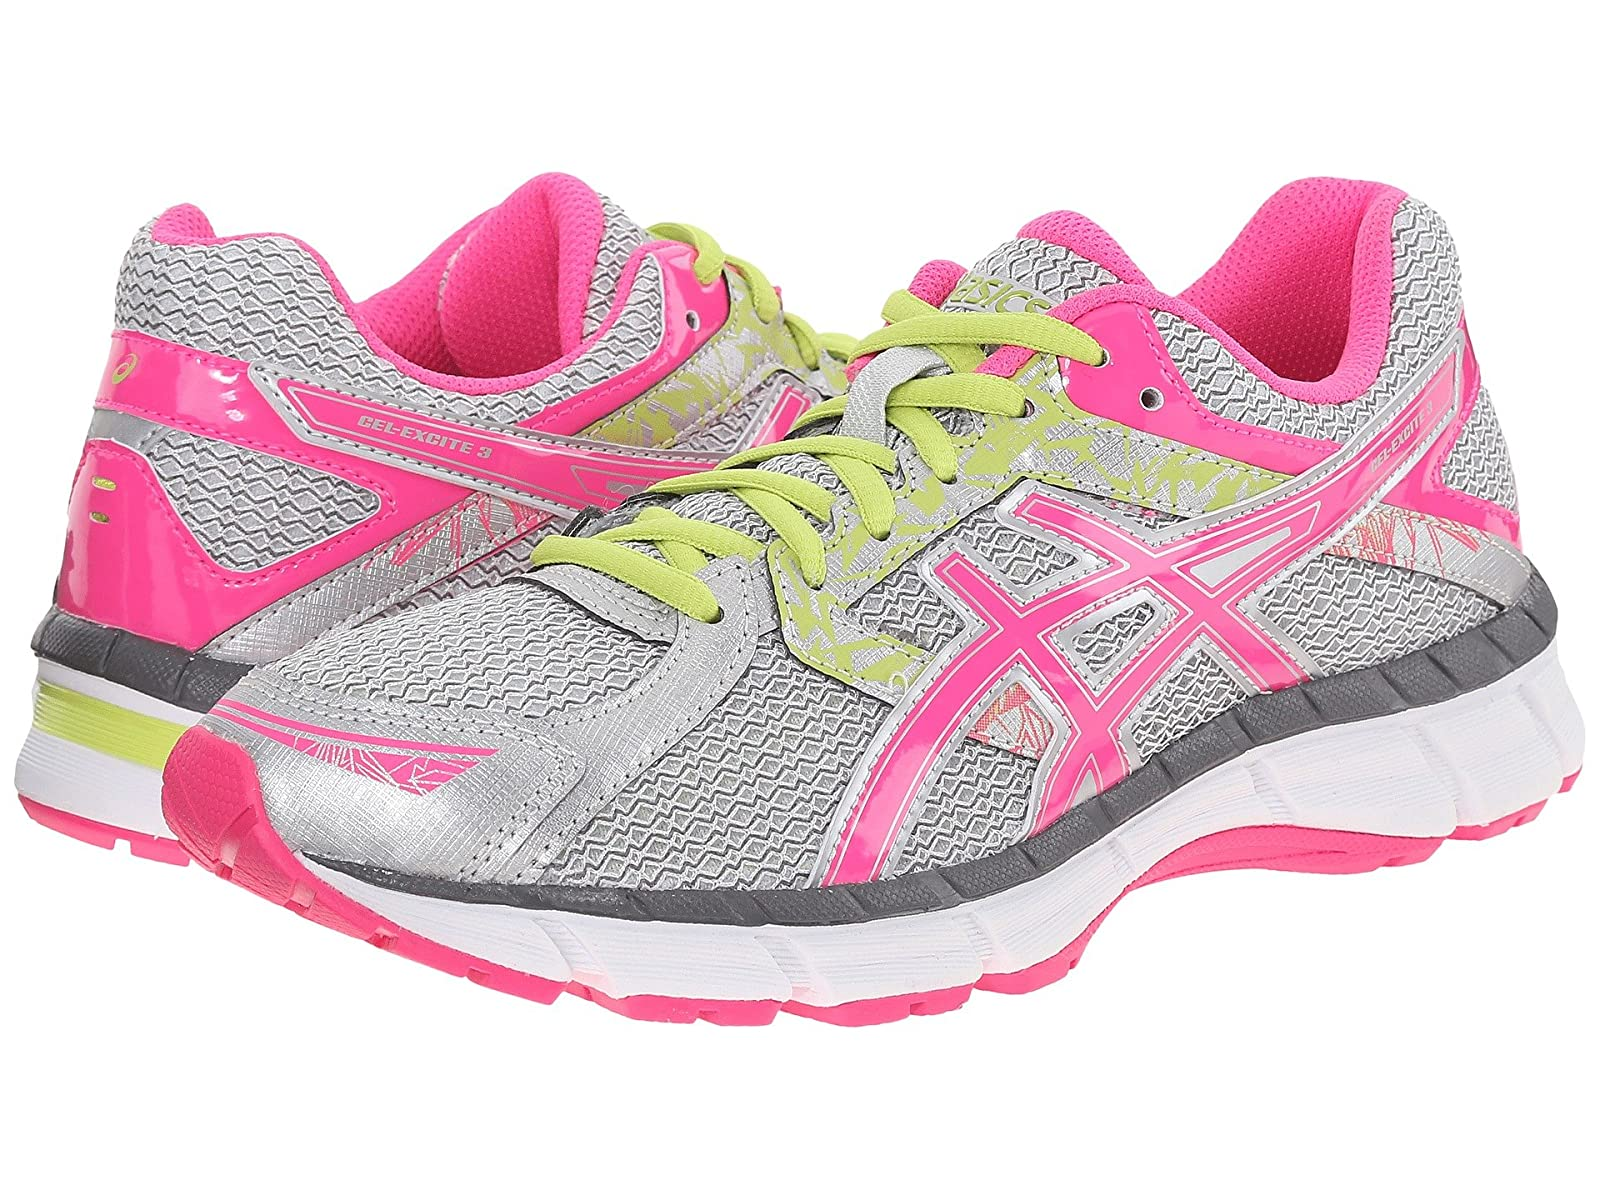 ASICS Gel-Excite™ 3Cheap and distinctive eye-catching shoes